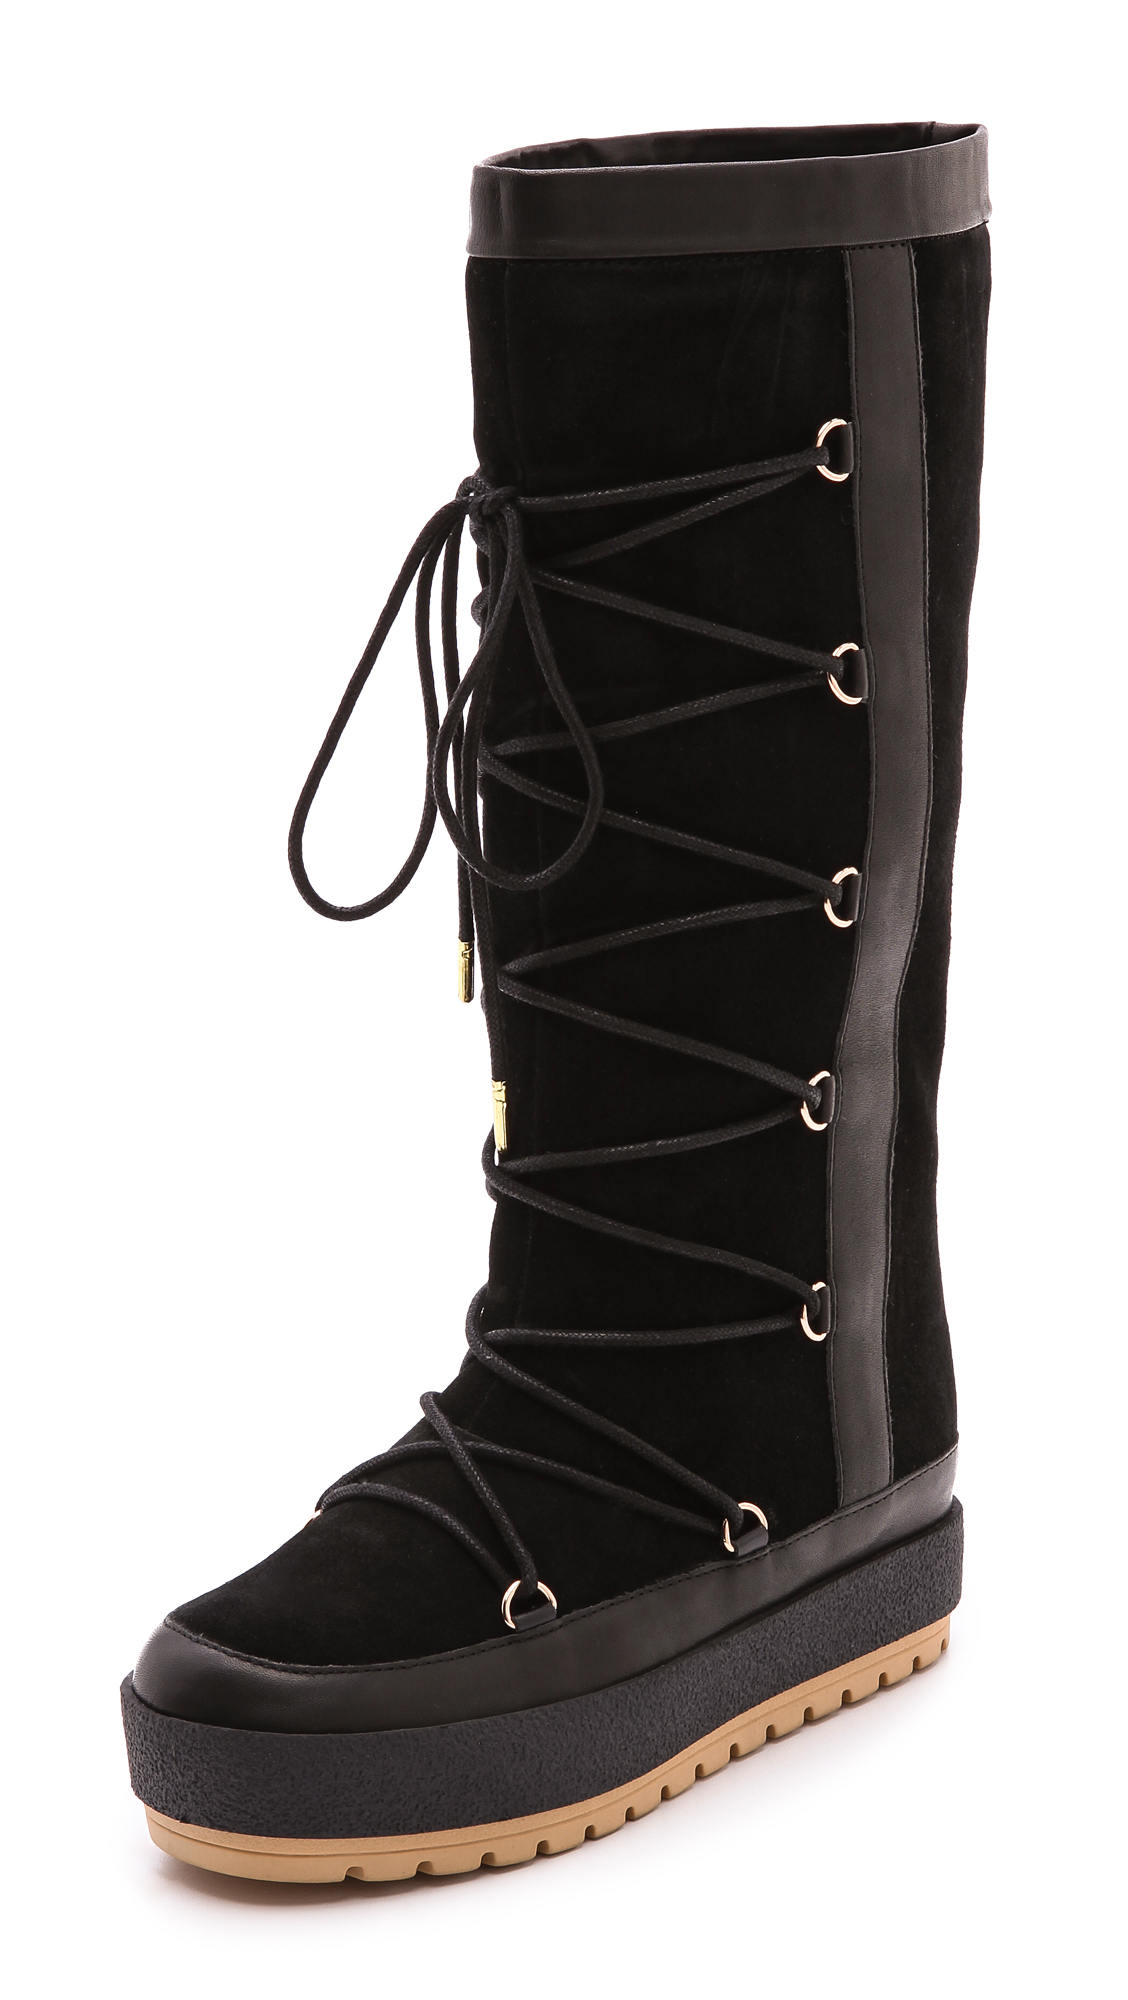 United Nude Polar Lace Up Boots In Black Lyst